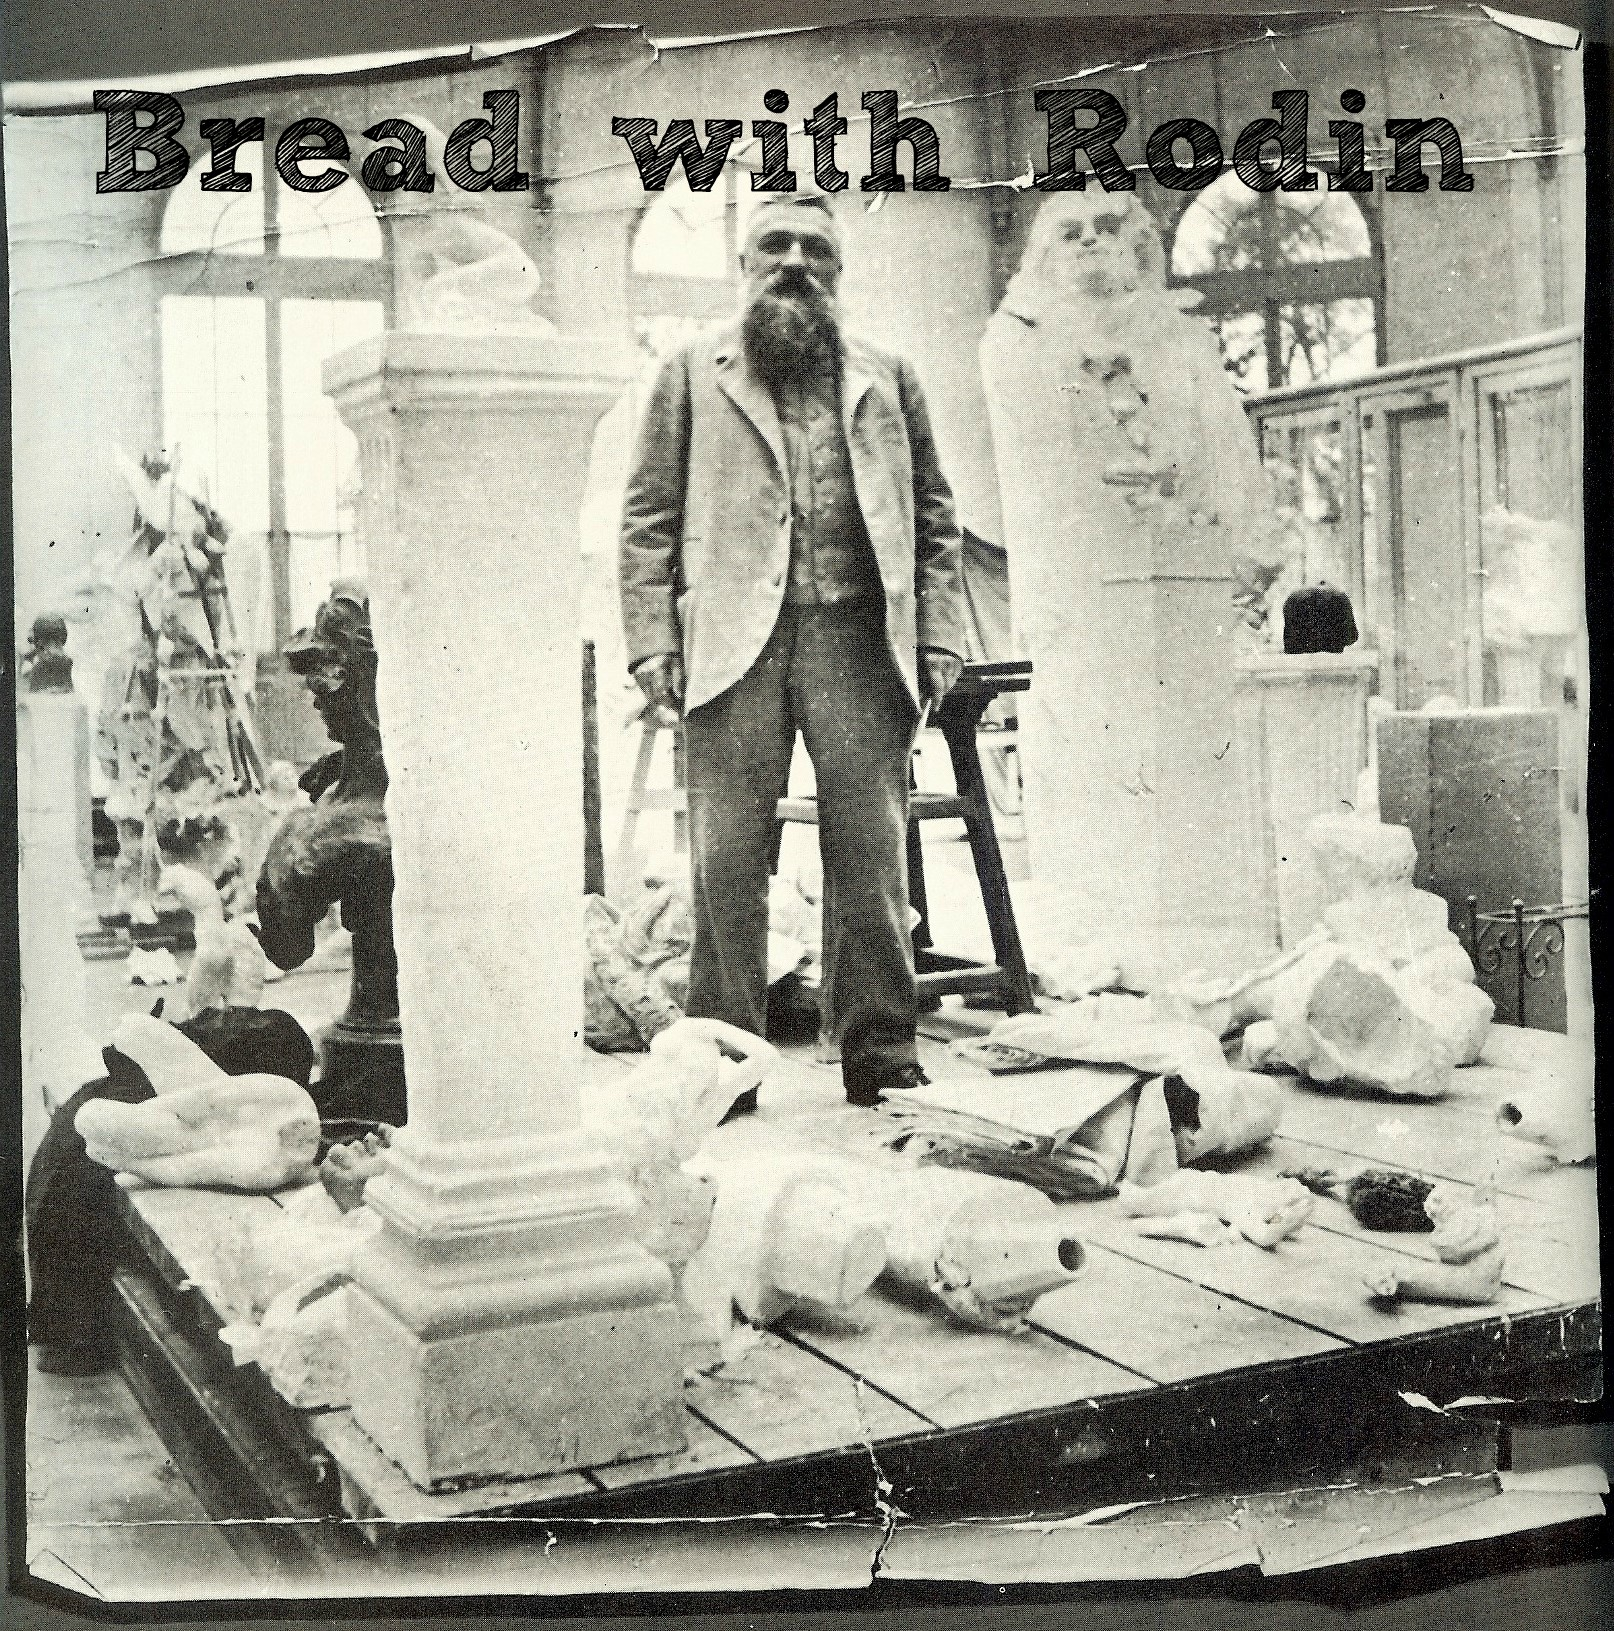 Auguste Rodin in his work studio, where he entertains Jack Dawson in the short story Bread with Rodin.